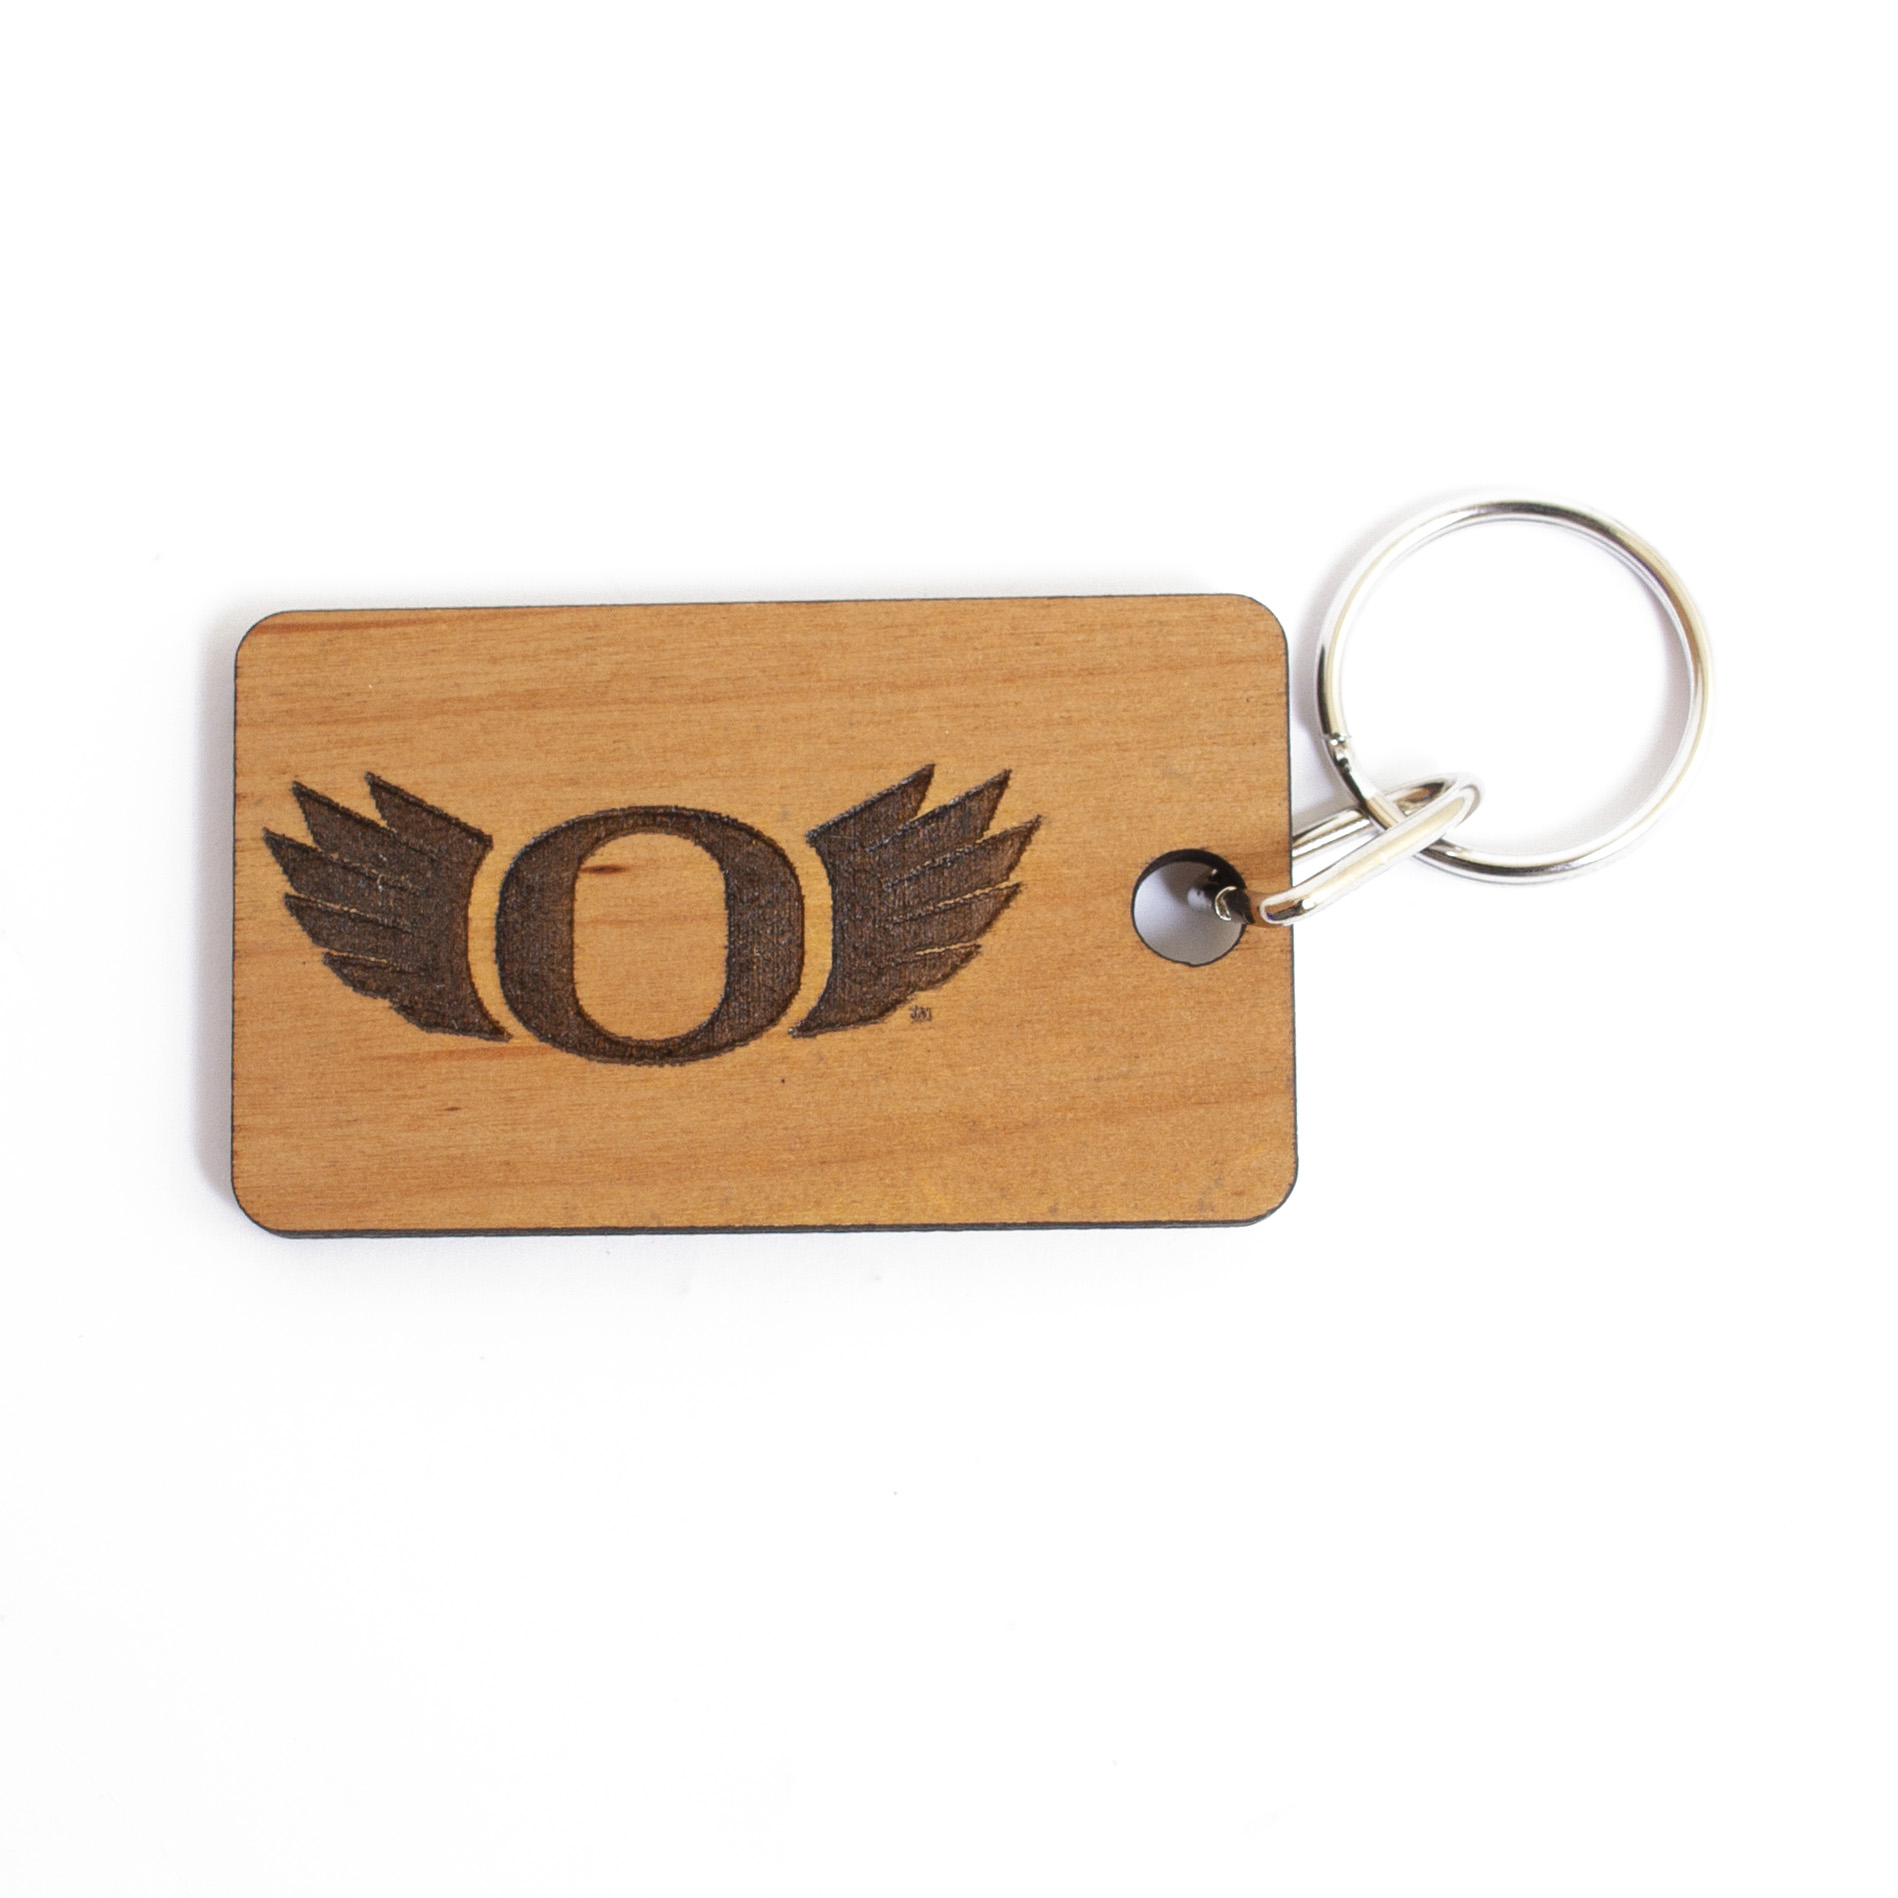 O-logo, Wood, Key Chain